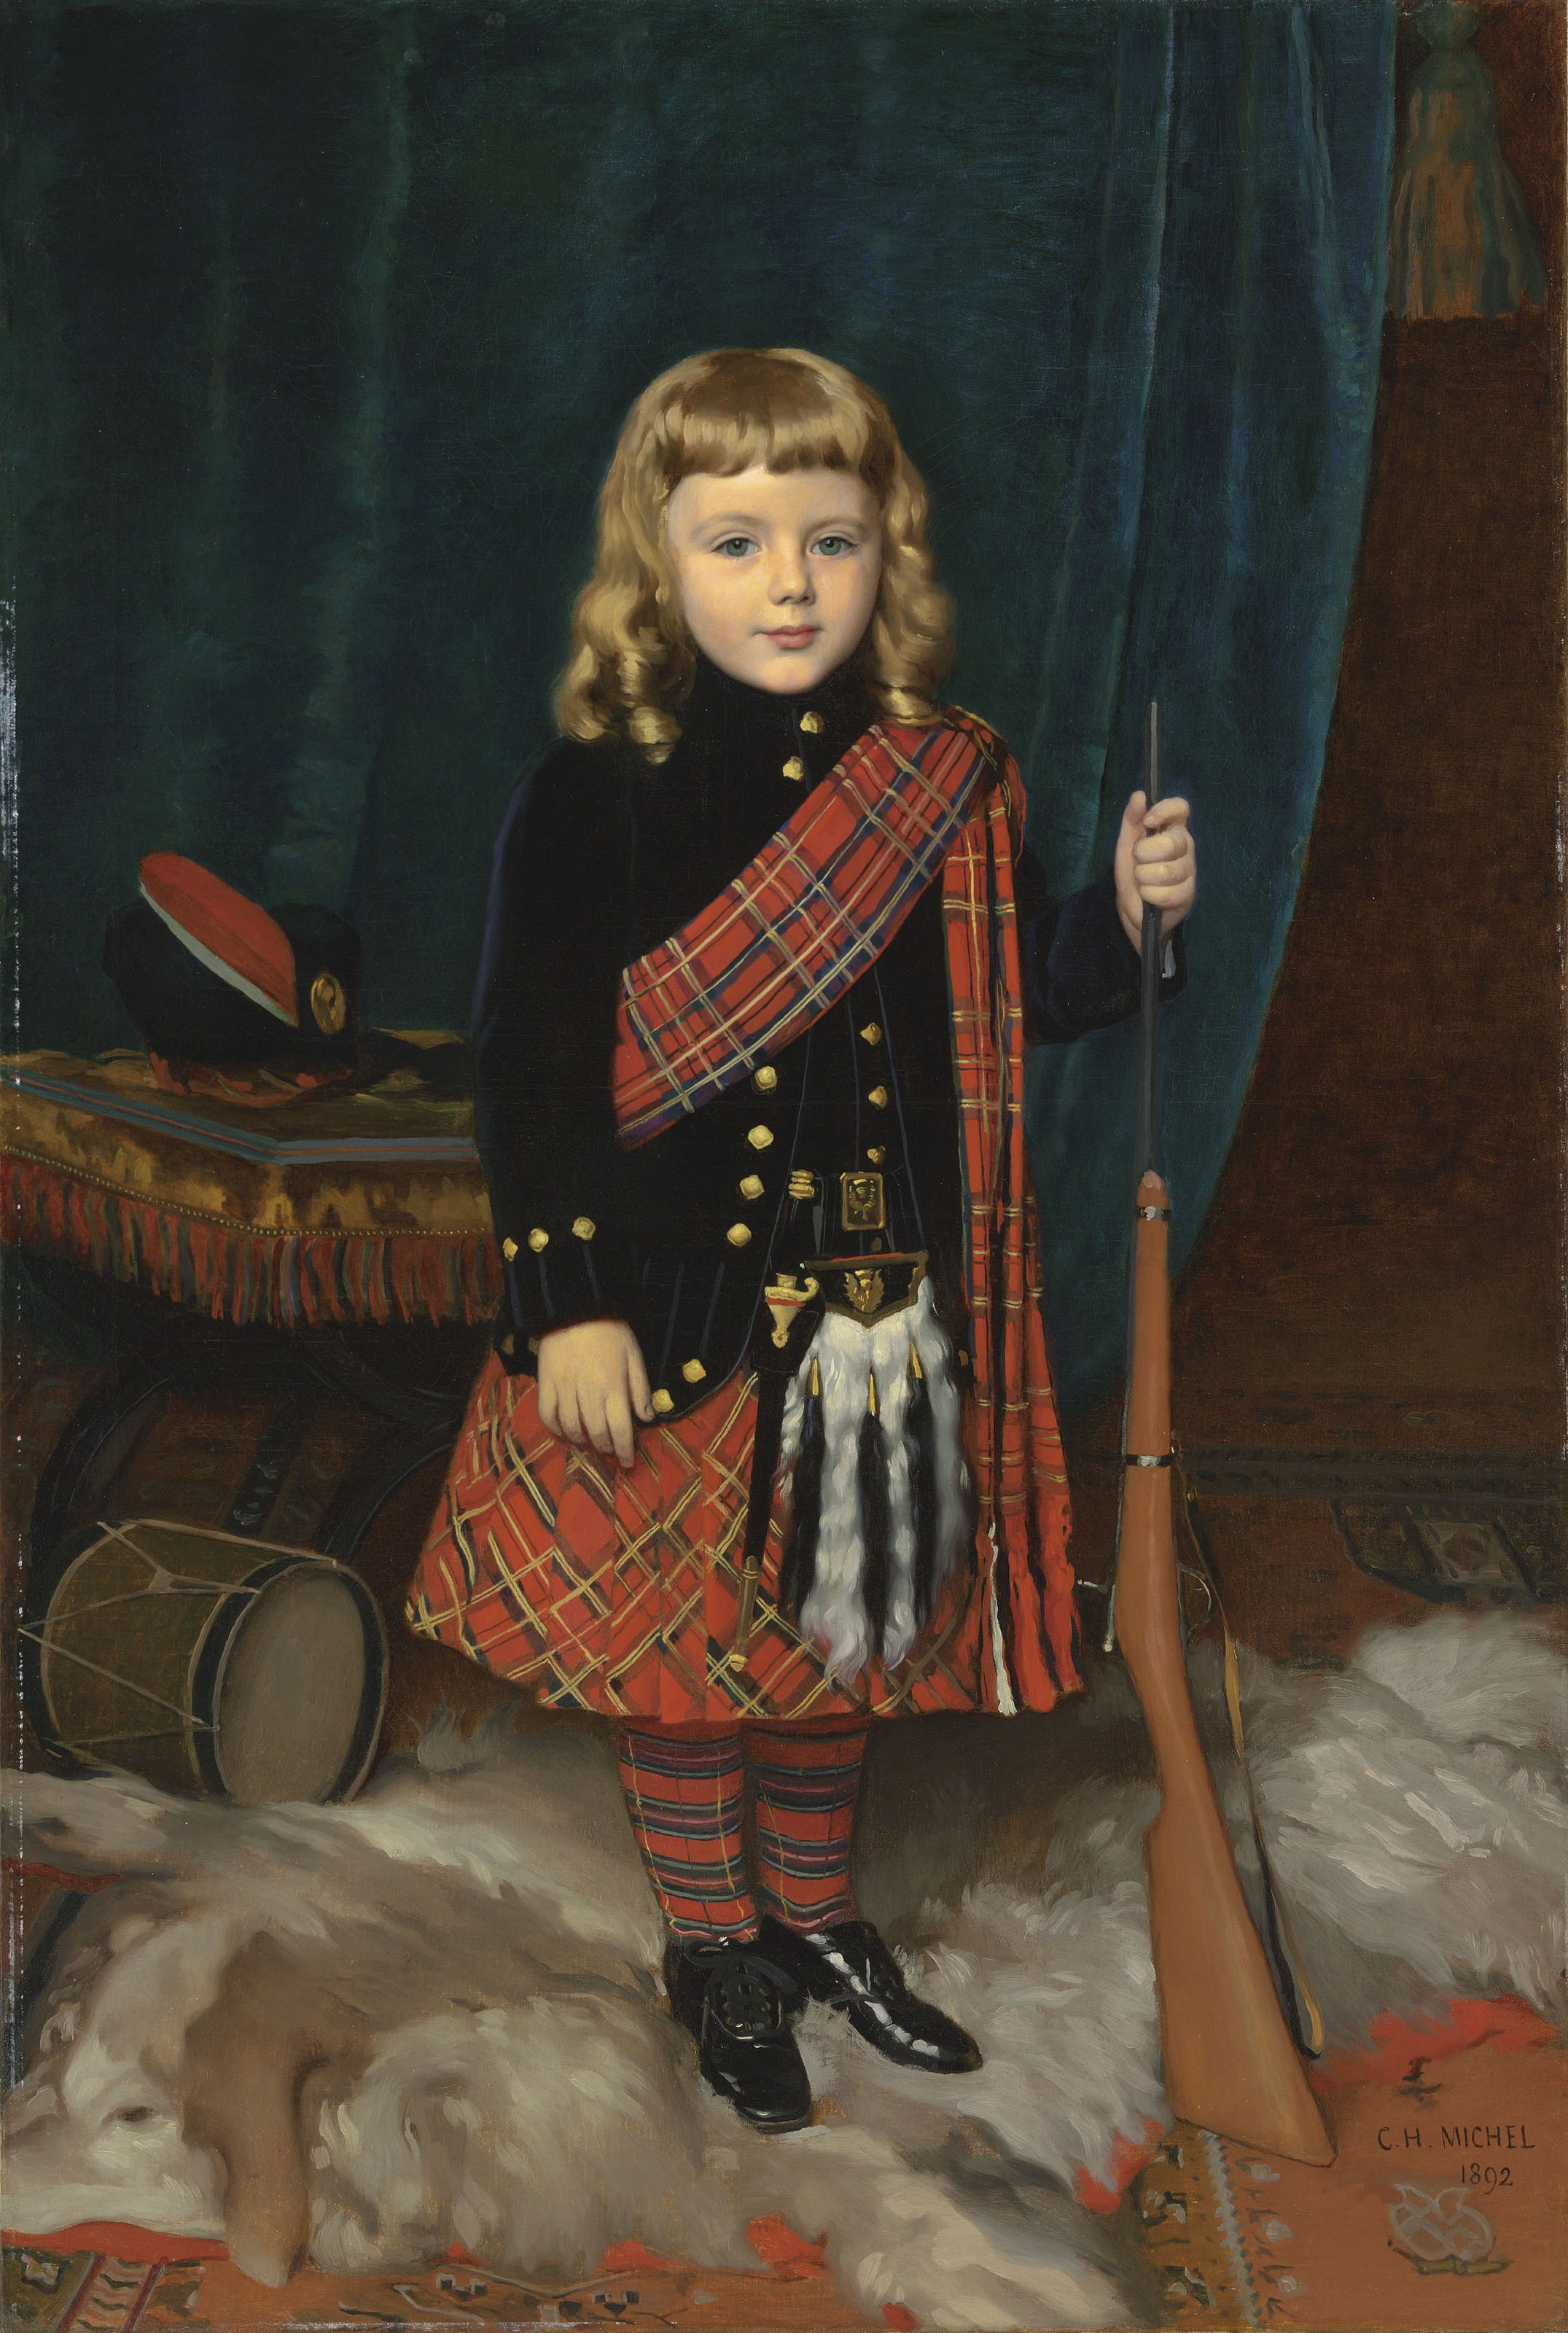 Portrait of a young boy, full-length, wearing Highland dress